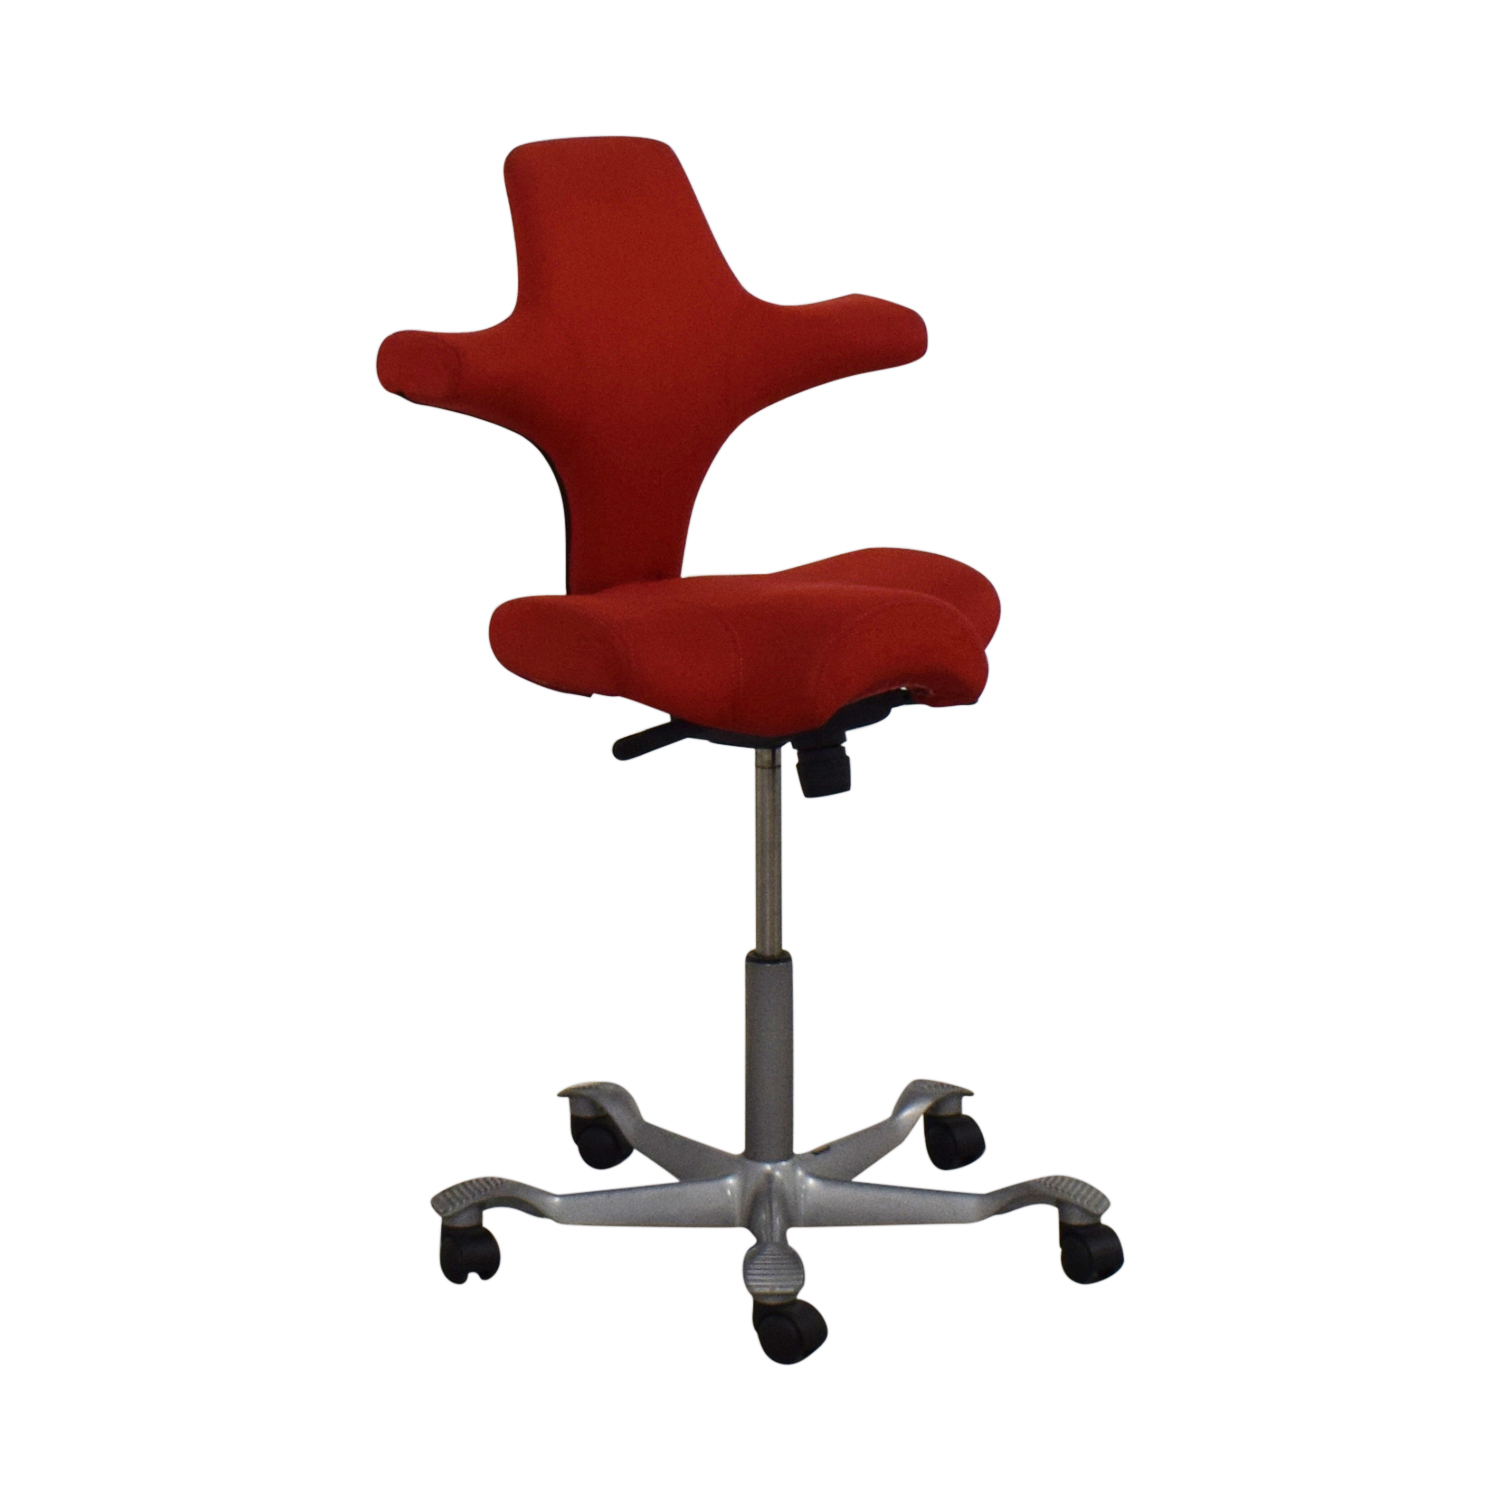 HAG HAG Capisco Chair red